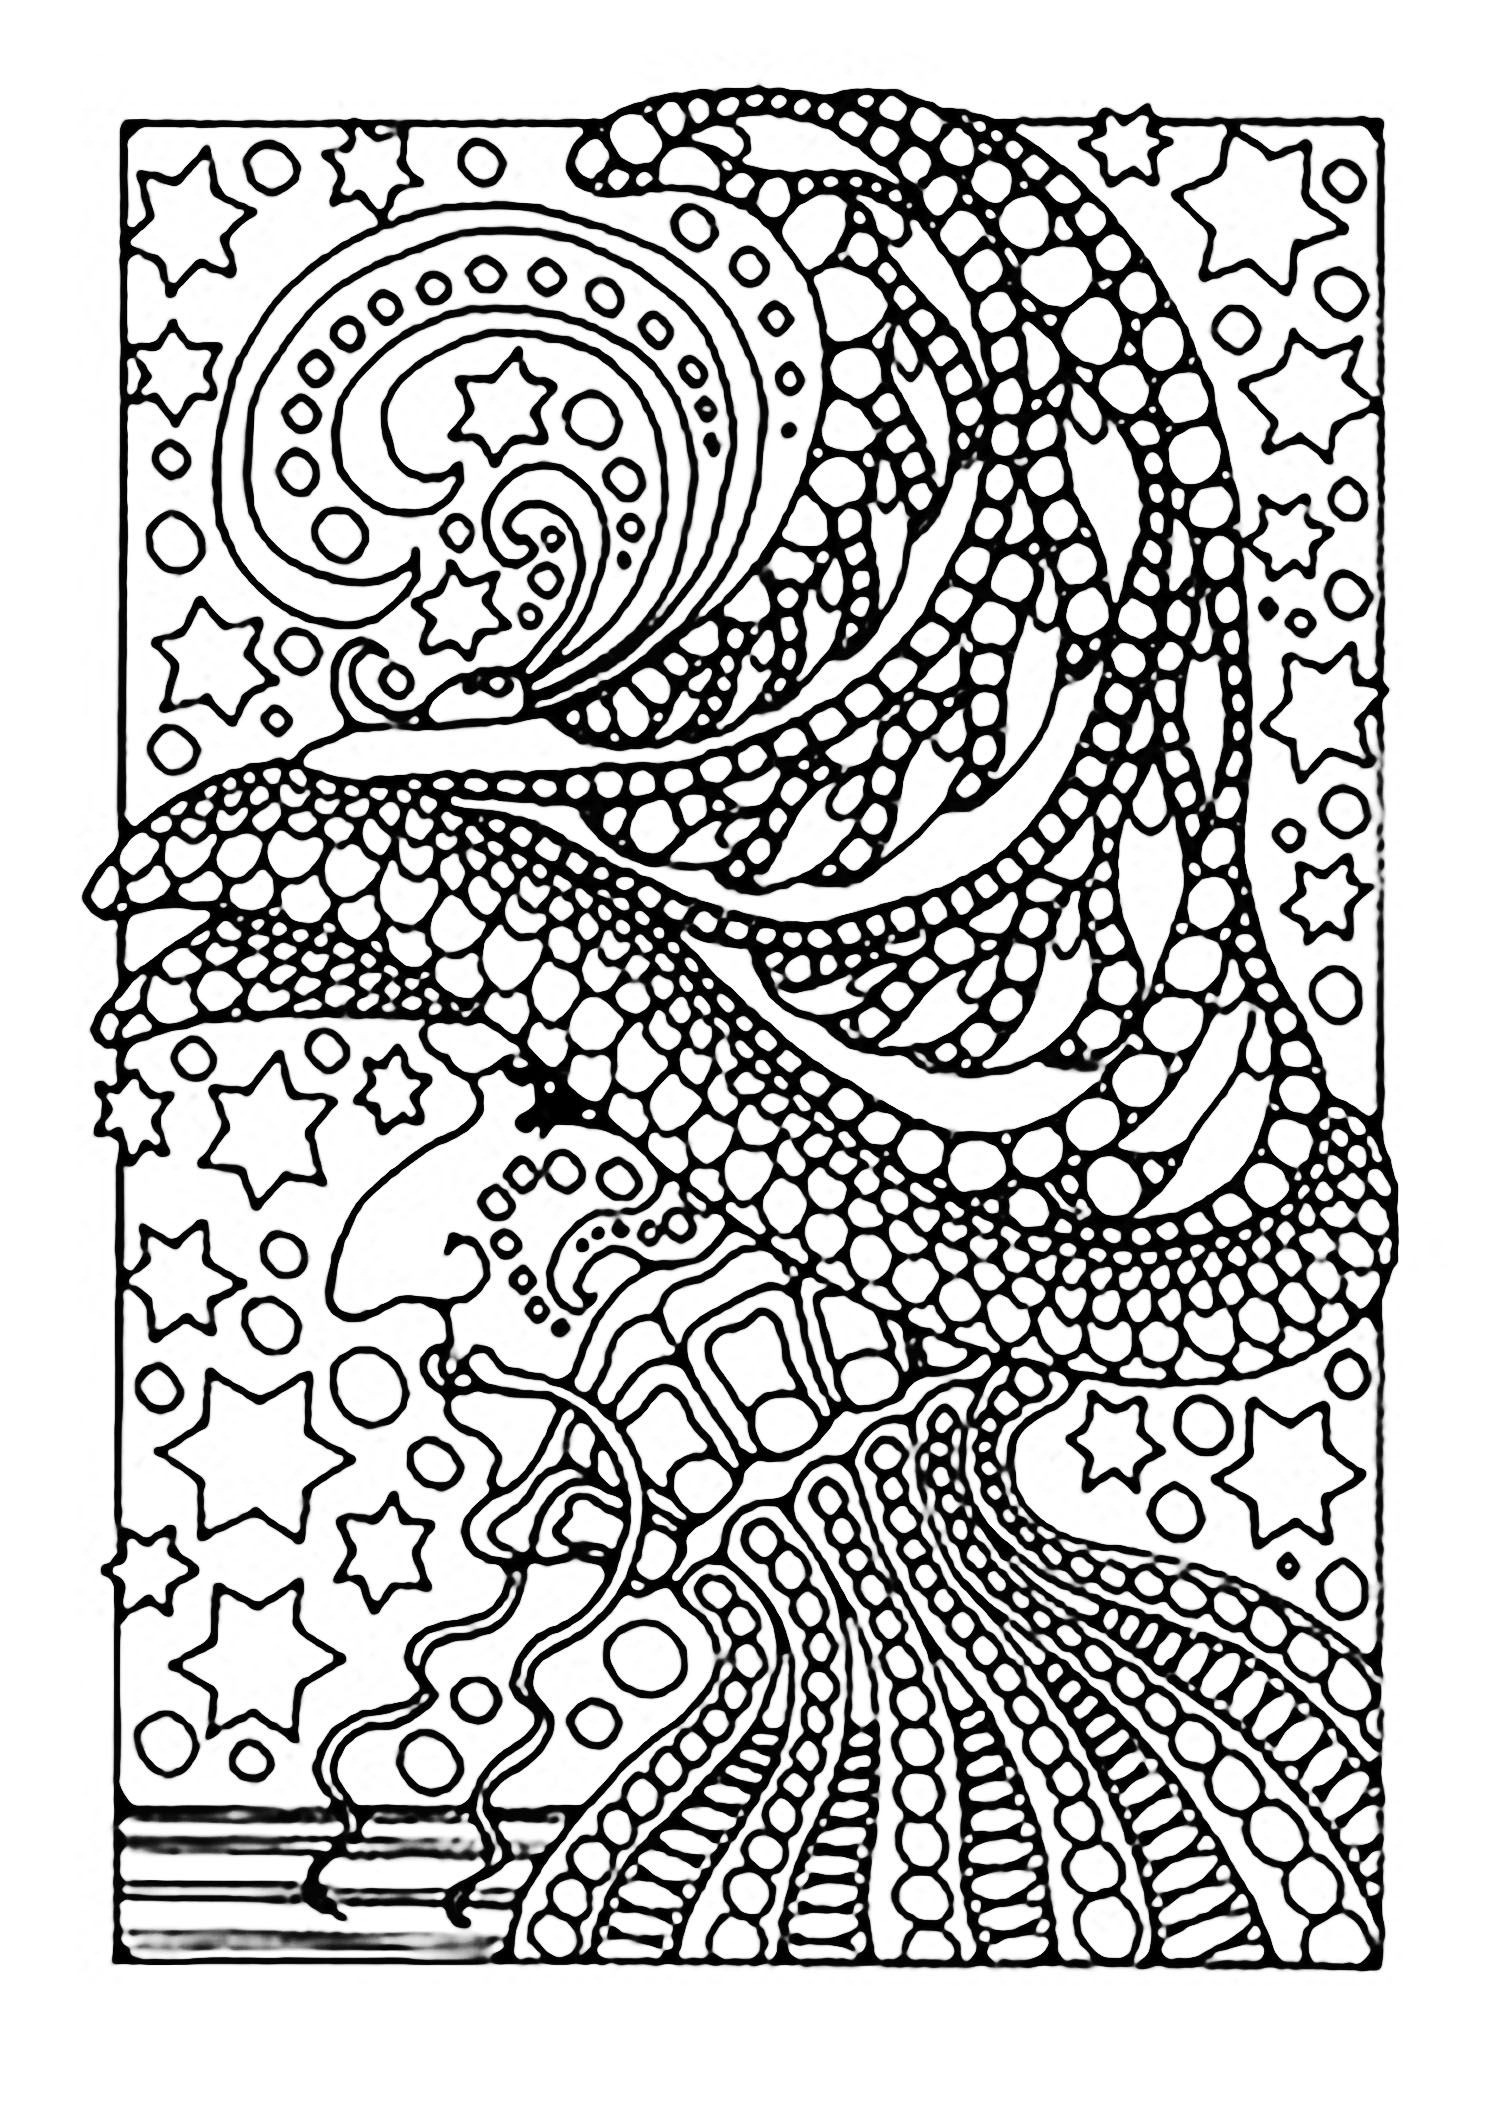 zentangle coloring pages free printable zentangle to print zentangle kids coloring pages free coloring zentangle printable pages